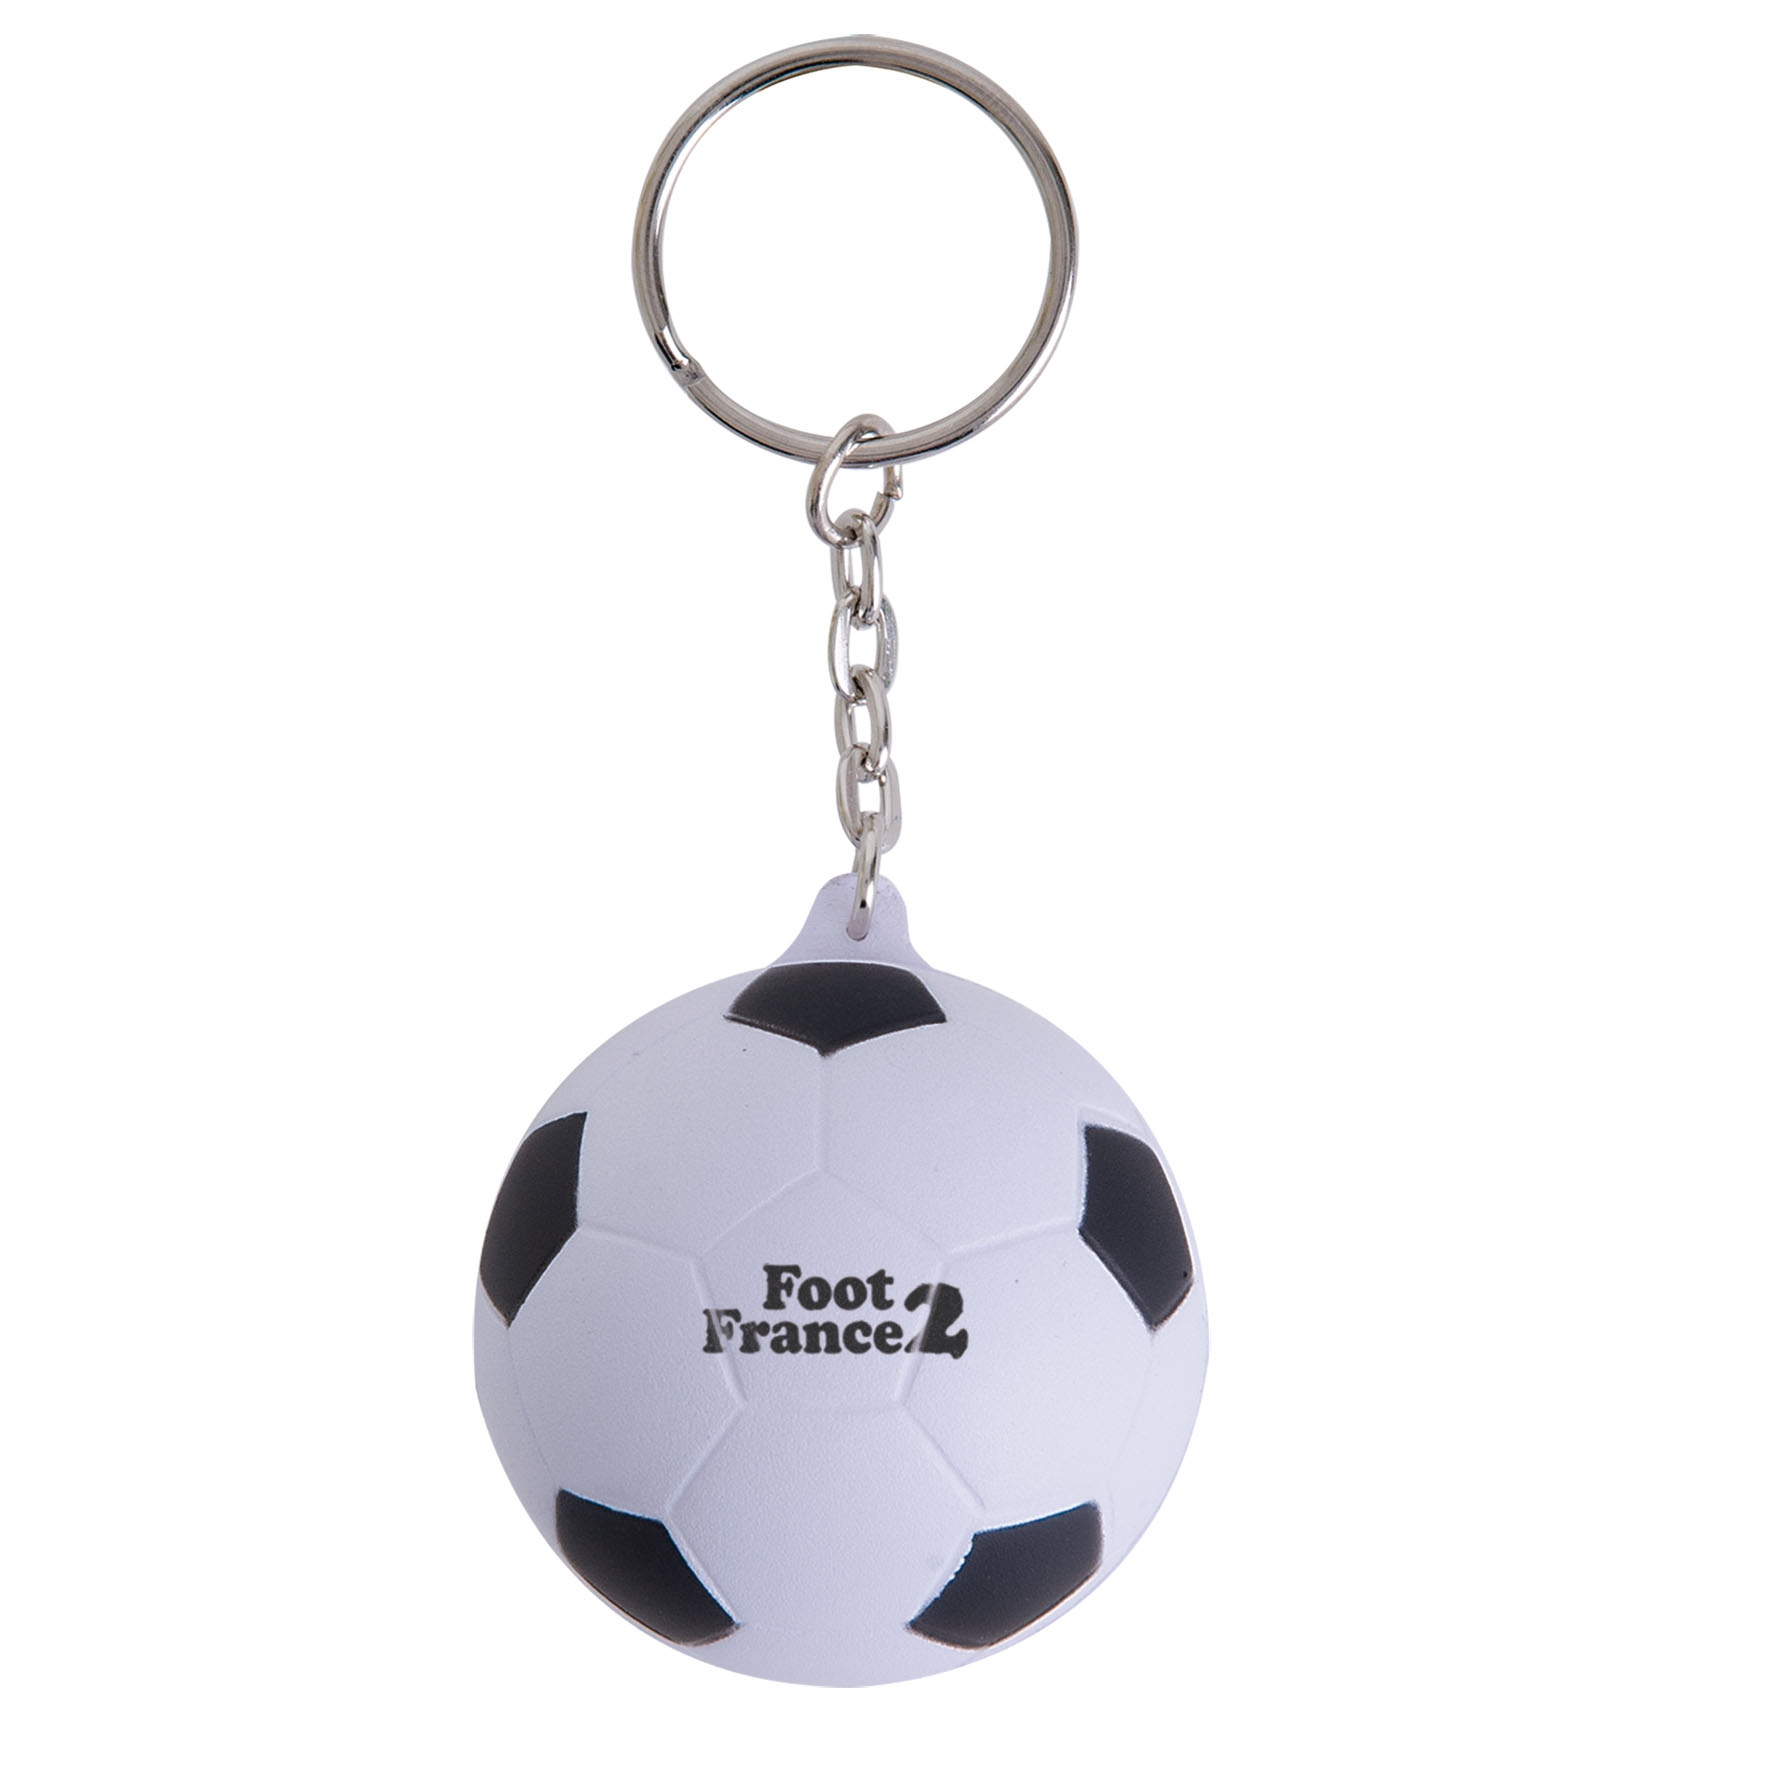 Goodies - Porte-clés publicitaire Football